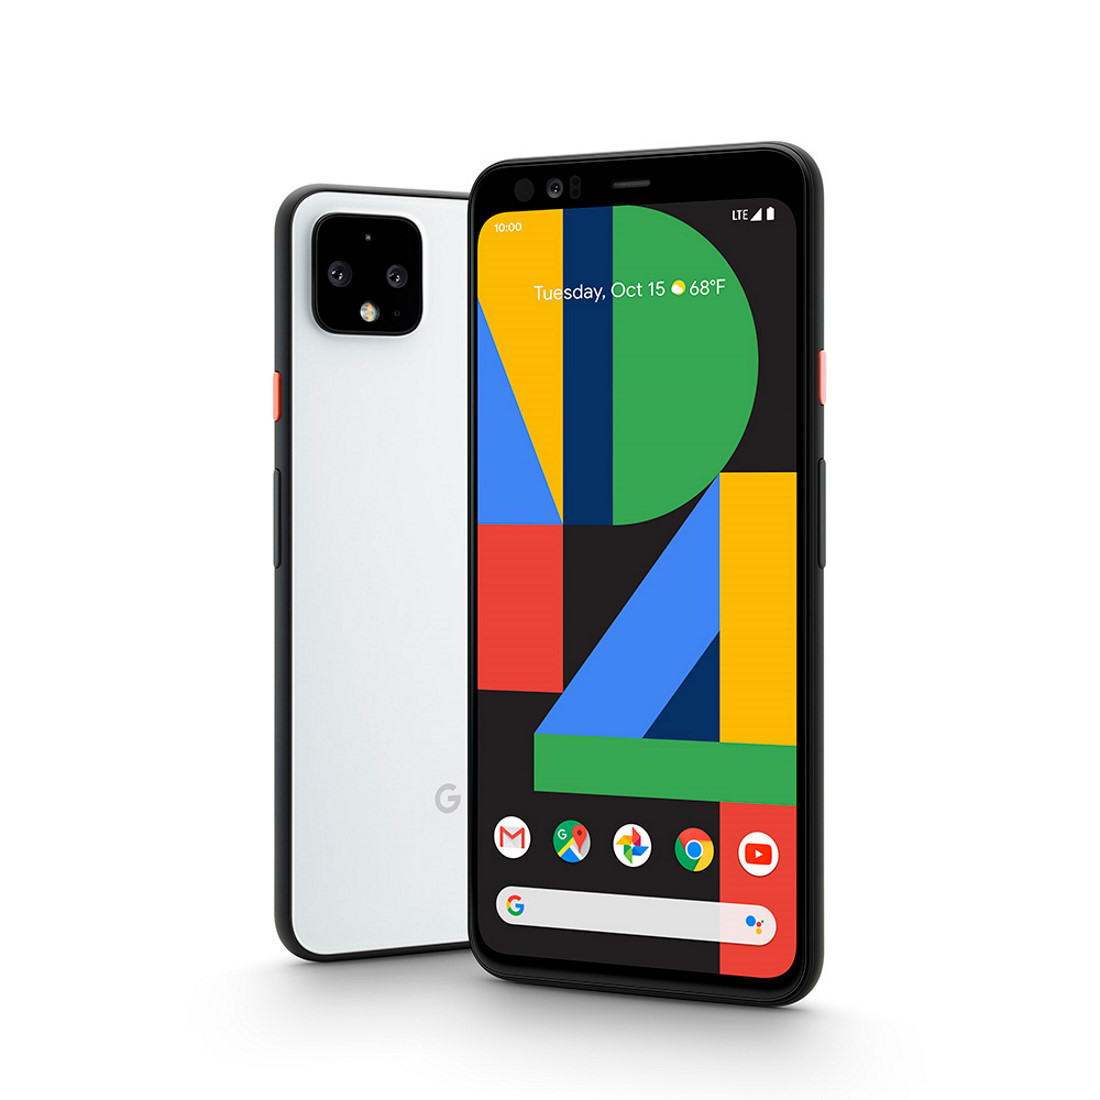 Google Pixel 4a Design and Price Teased via a Billboard